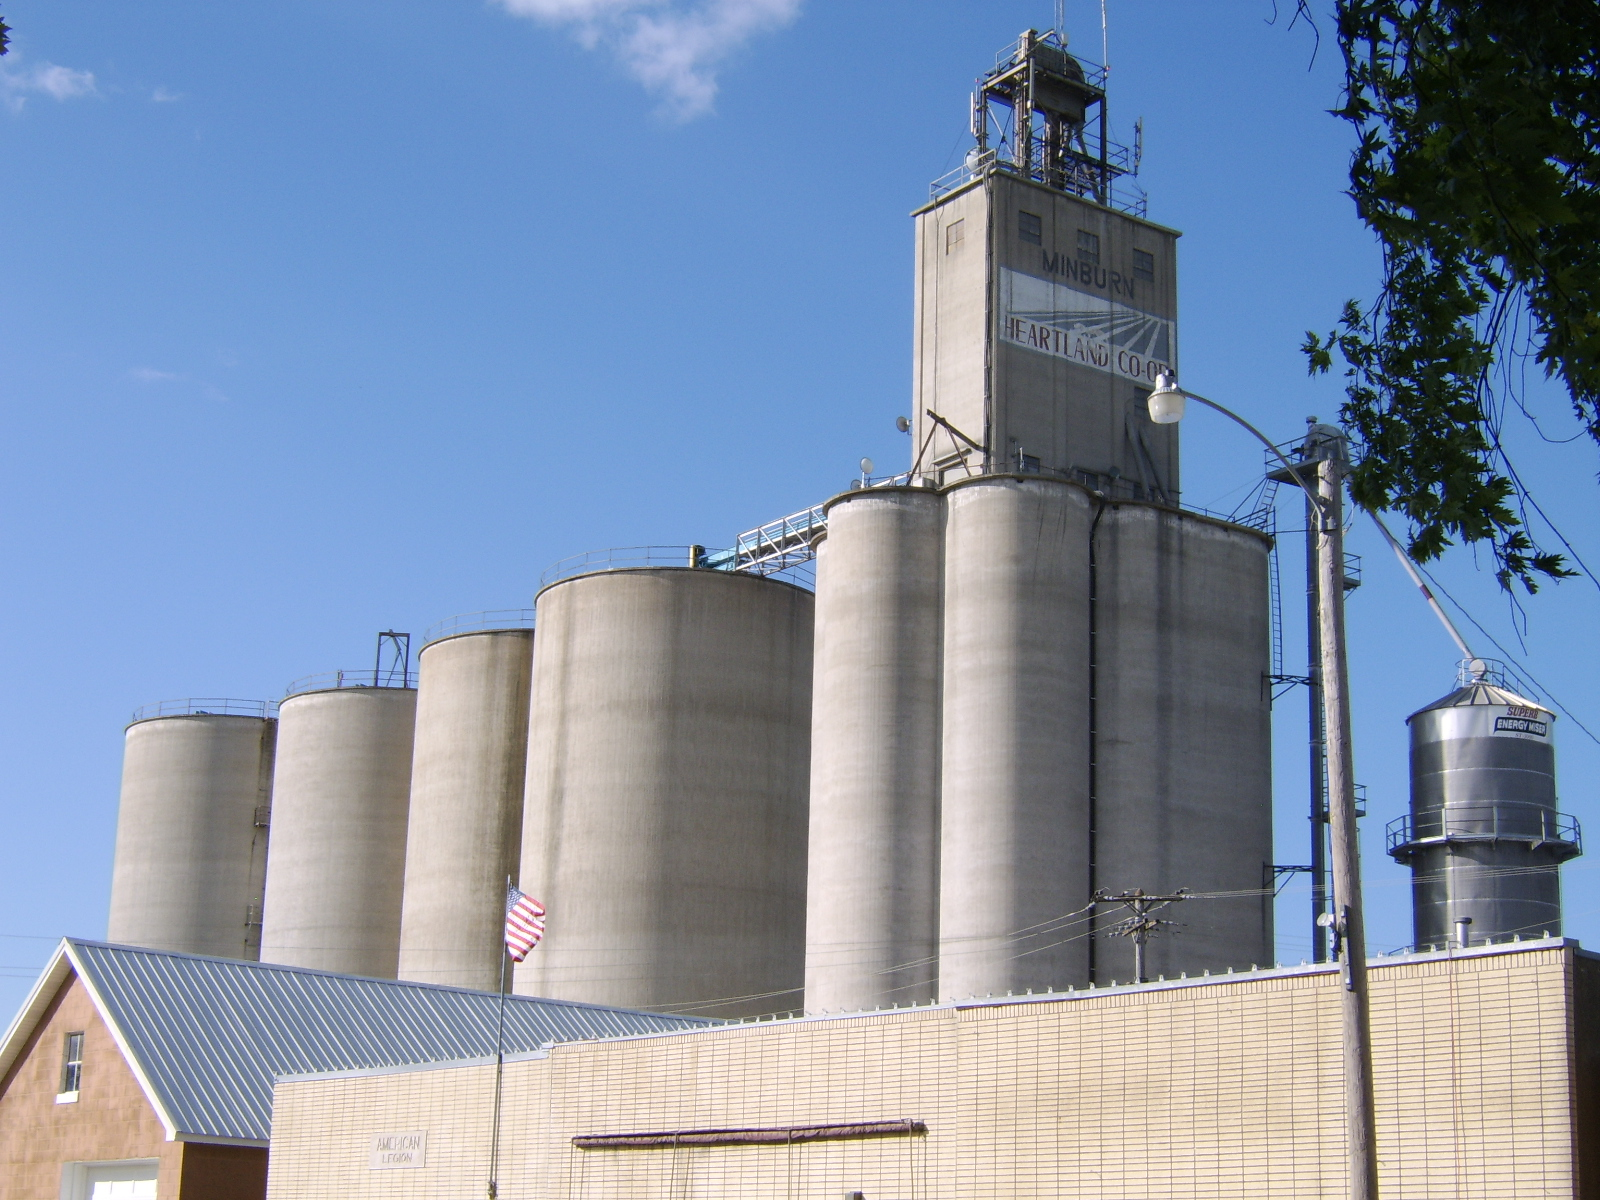 The corn grain elevator of Minburn